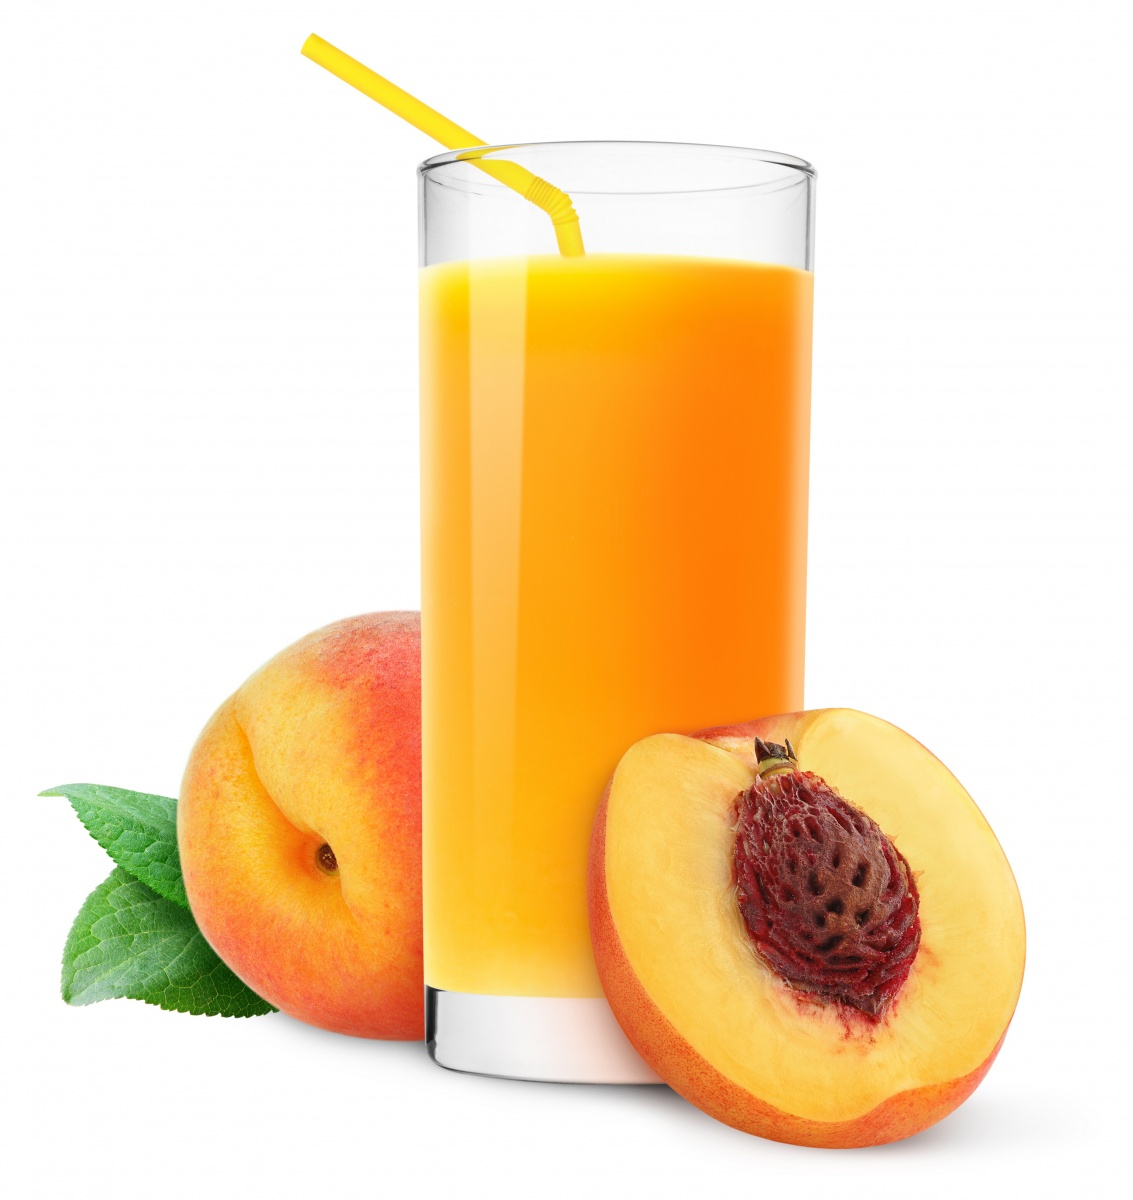 codex general standard for fruit juices In discussing the proposed draft codex general standard for fruit juices and employ the following process to determine fruit juice brix values for those juices.